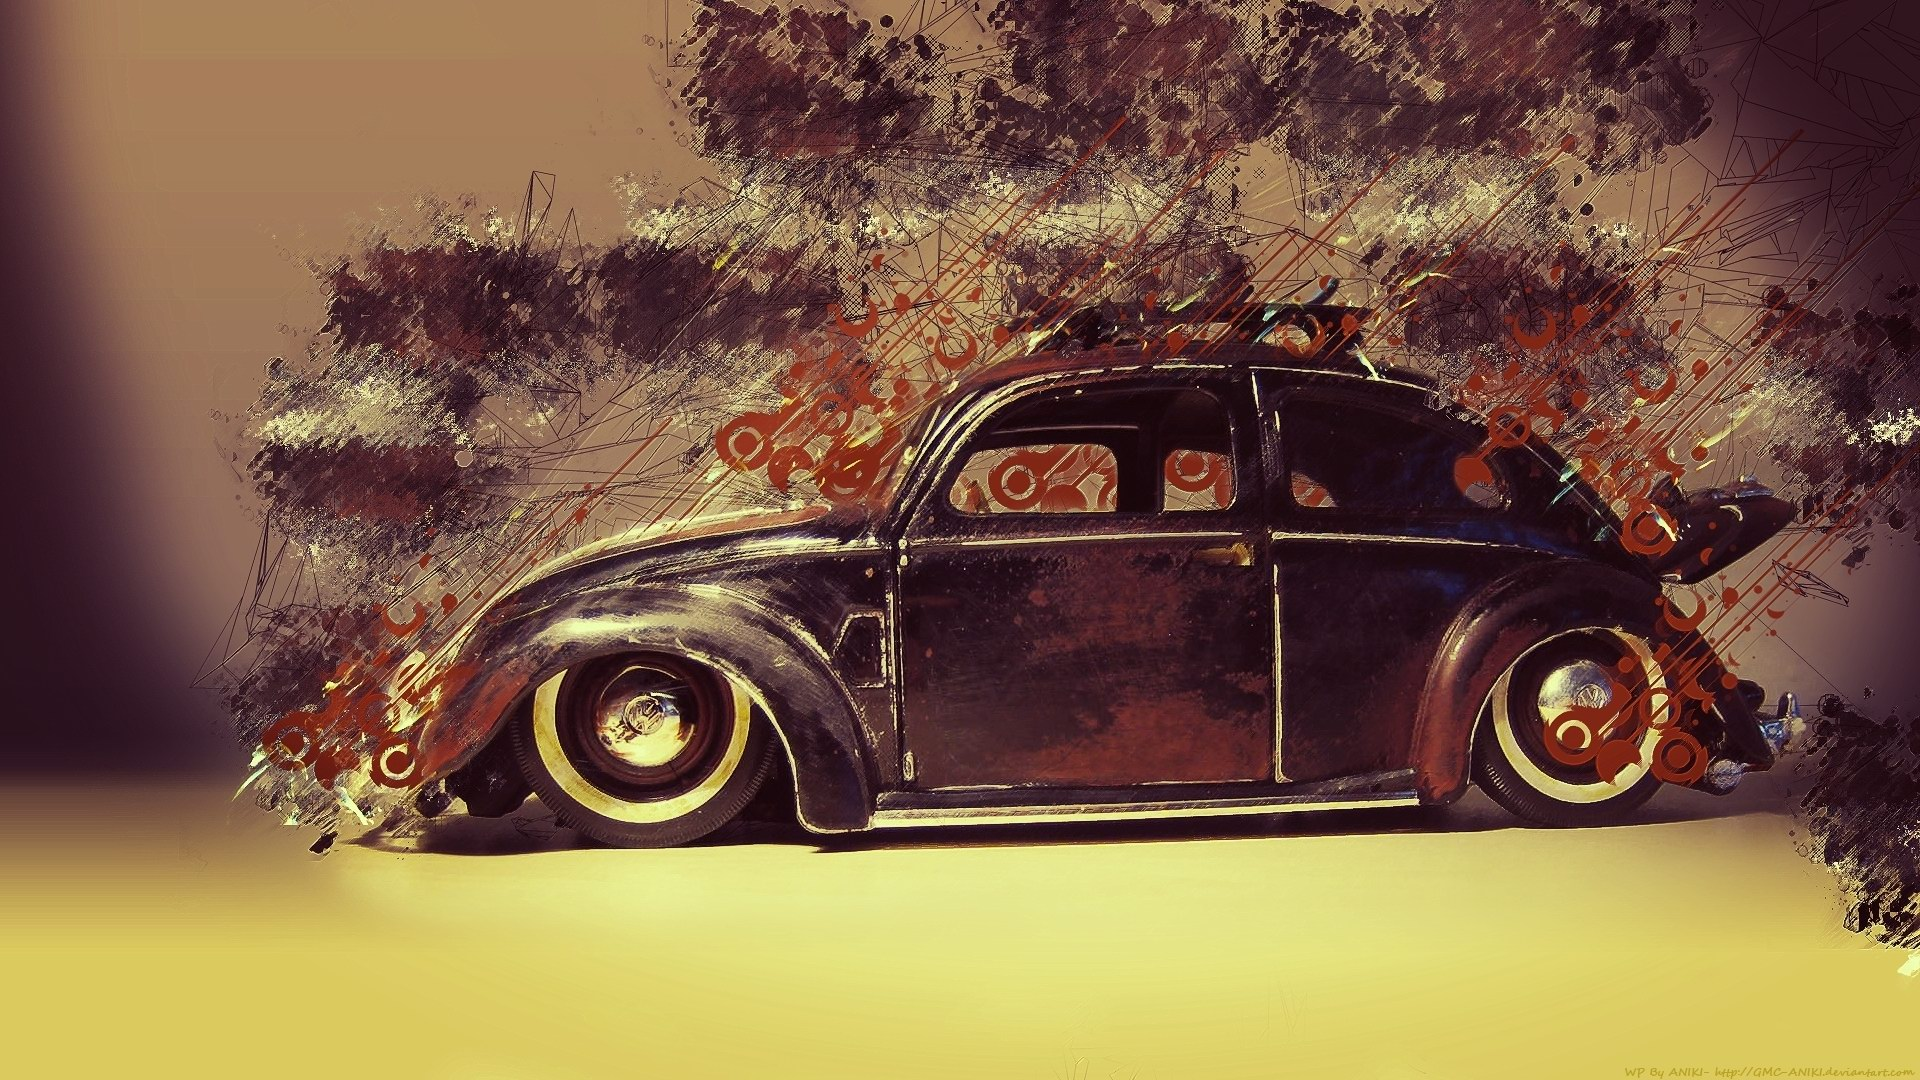 Volkswagen Wallpaper Beetle